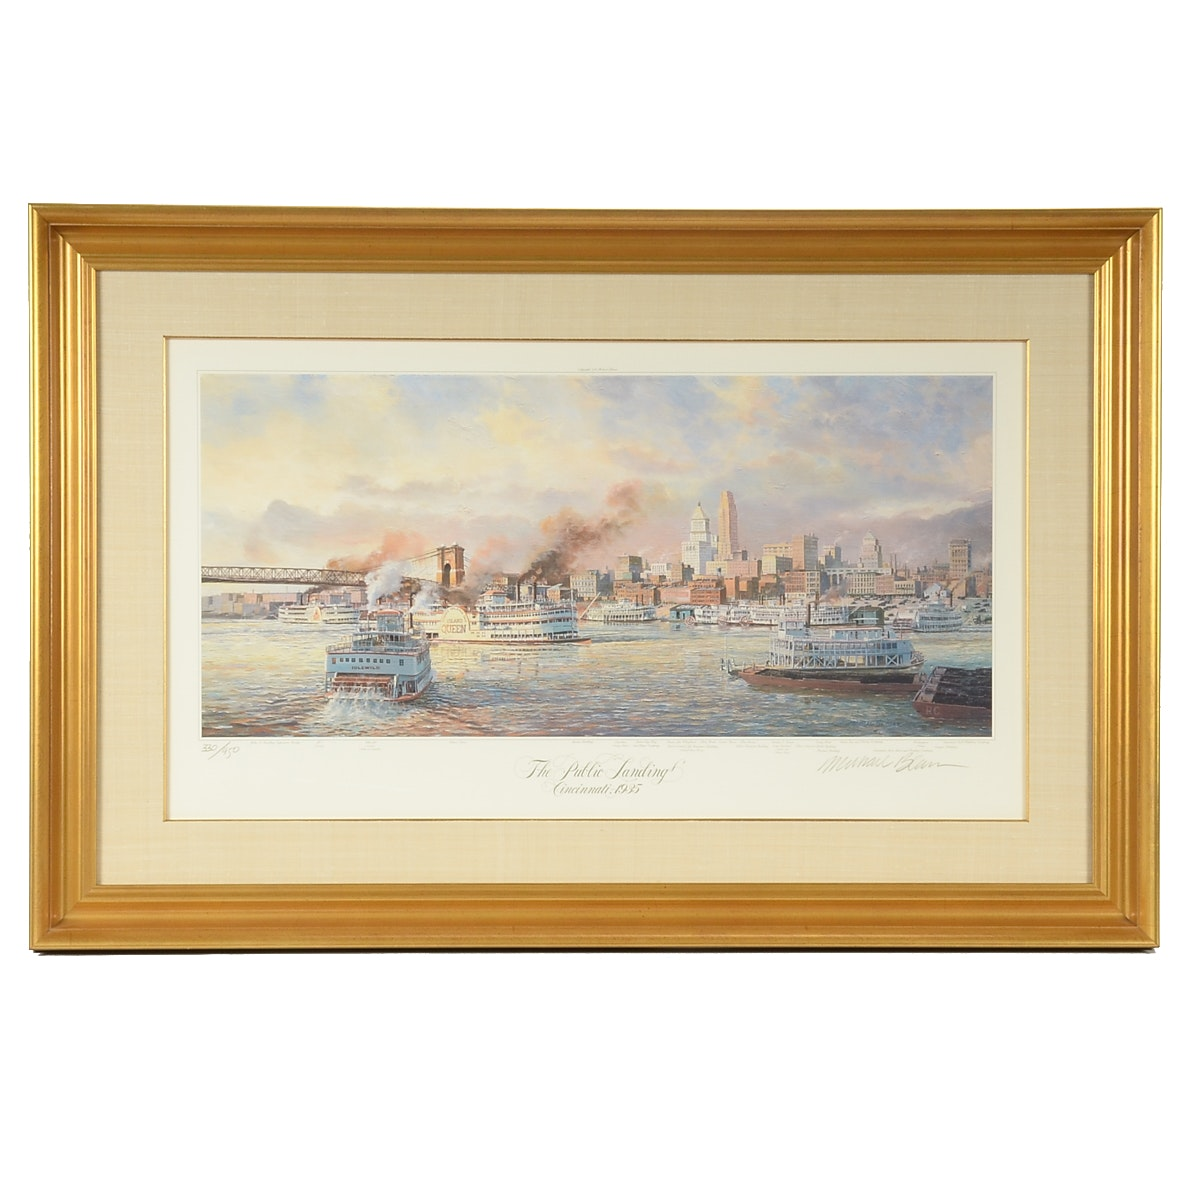 Michael Blaser Limited Edition Offset Lithograph